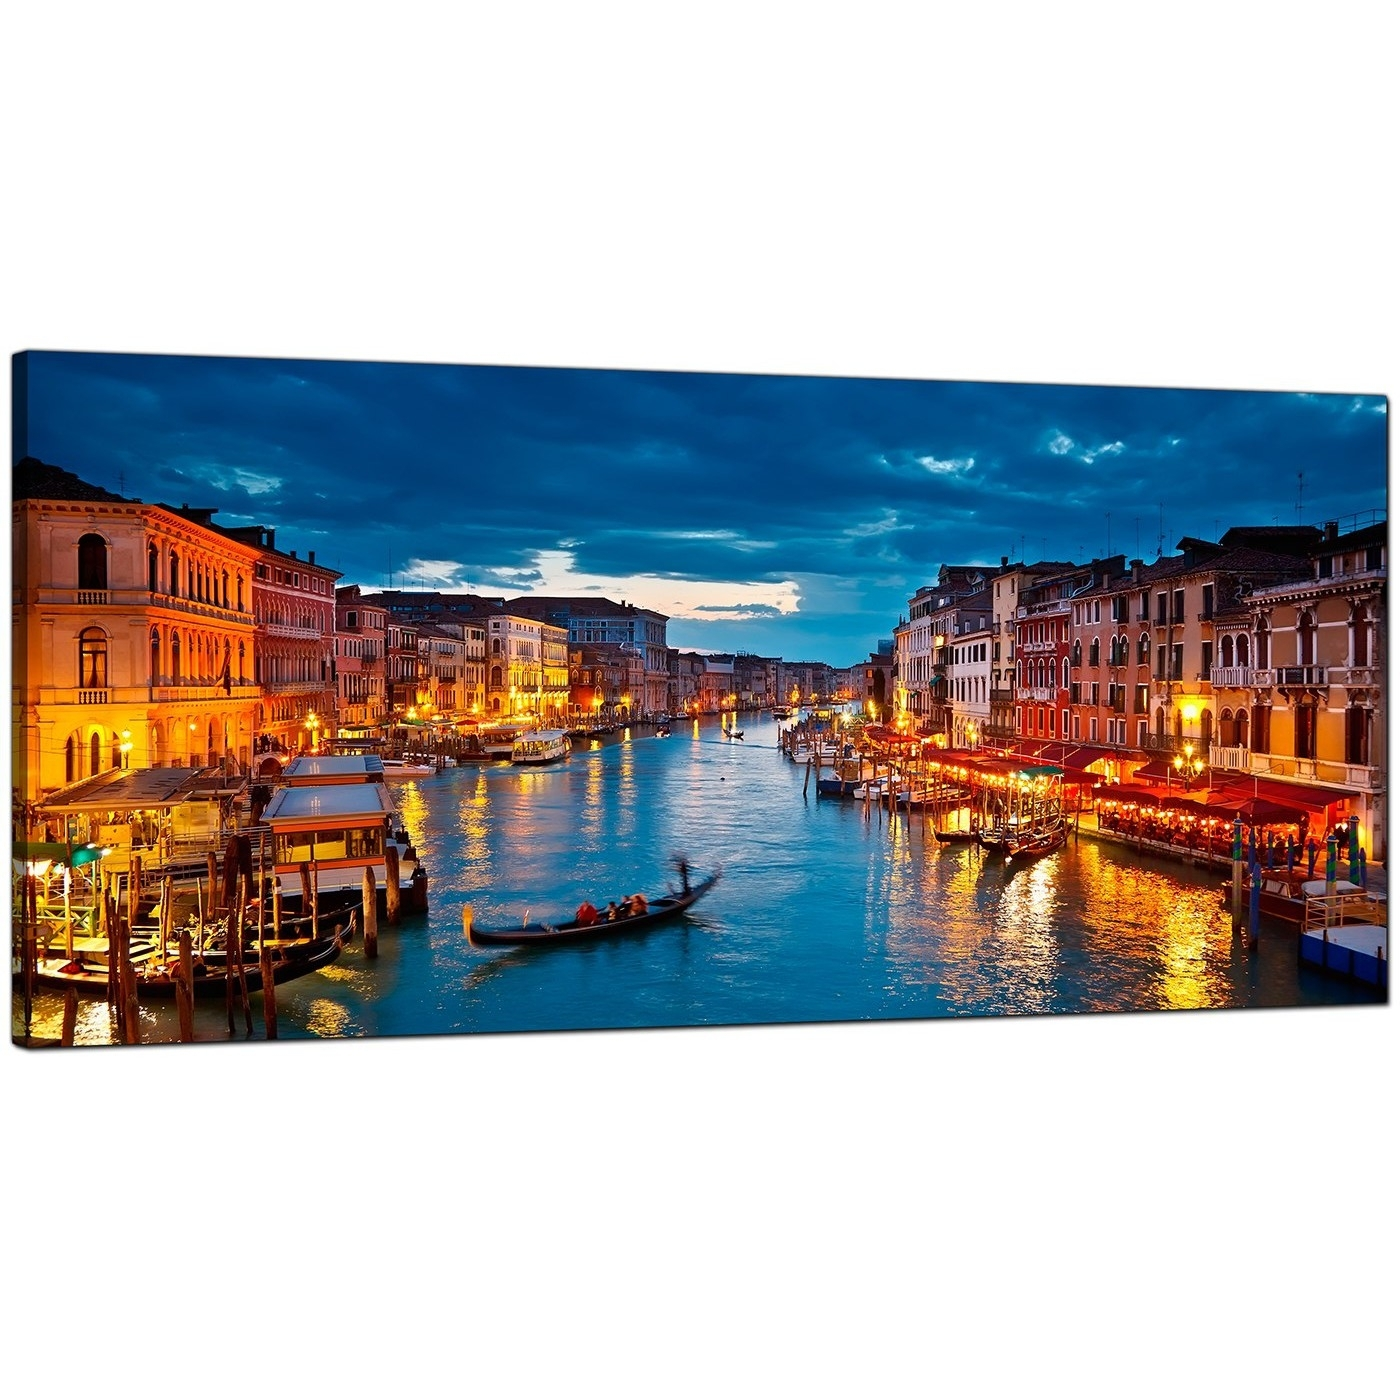 Cheap Canvas Prints Of Venice Italy For Your Living Room With Best And Newest Cheap Canvas Wall Art (Gallery 1 of 15)